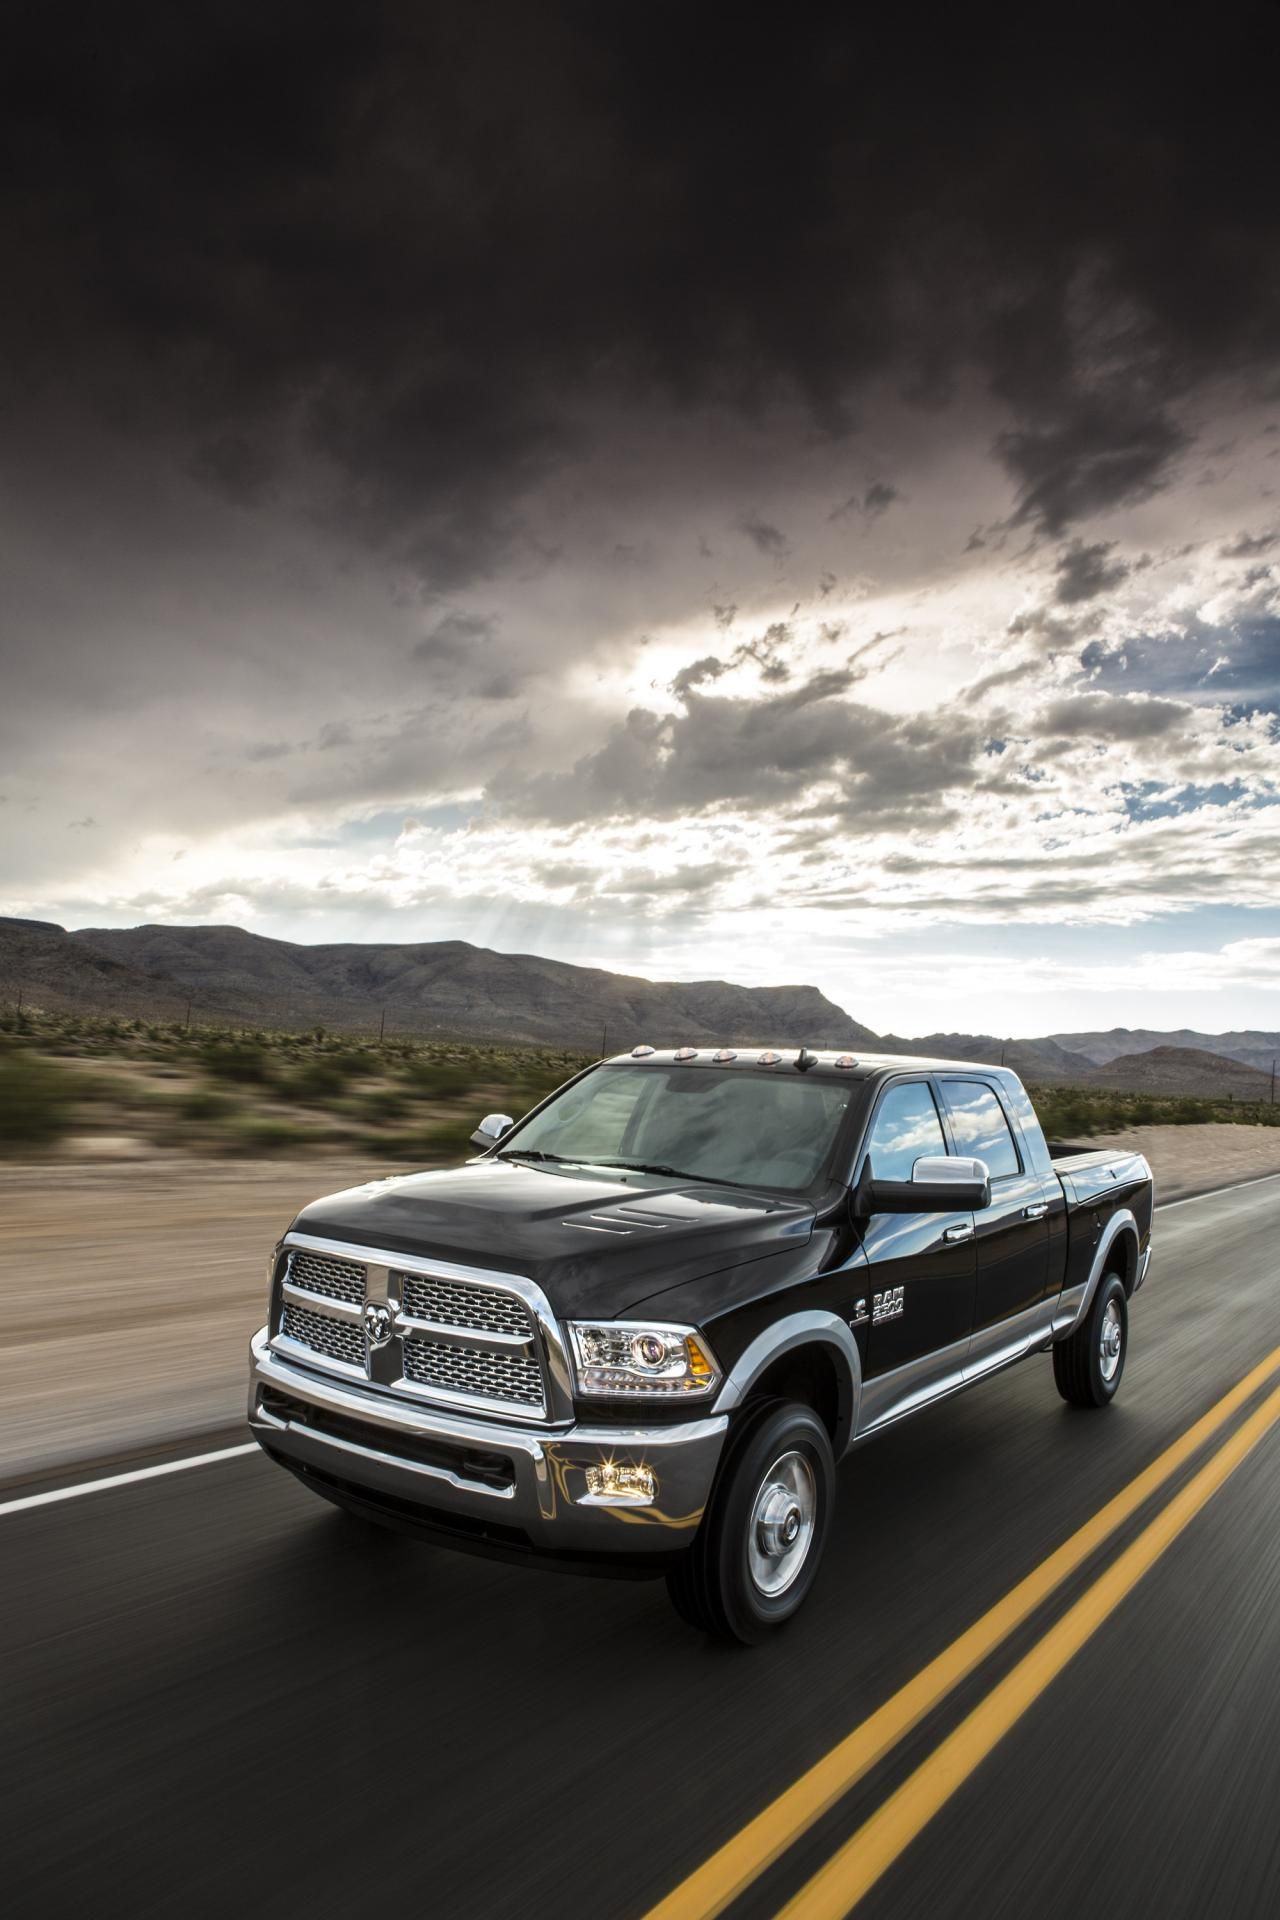 2013 Dodge Ram Heavy Duty | Landers McLarty Dodge Chrysler Jeep Ram | 6530  University Drive